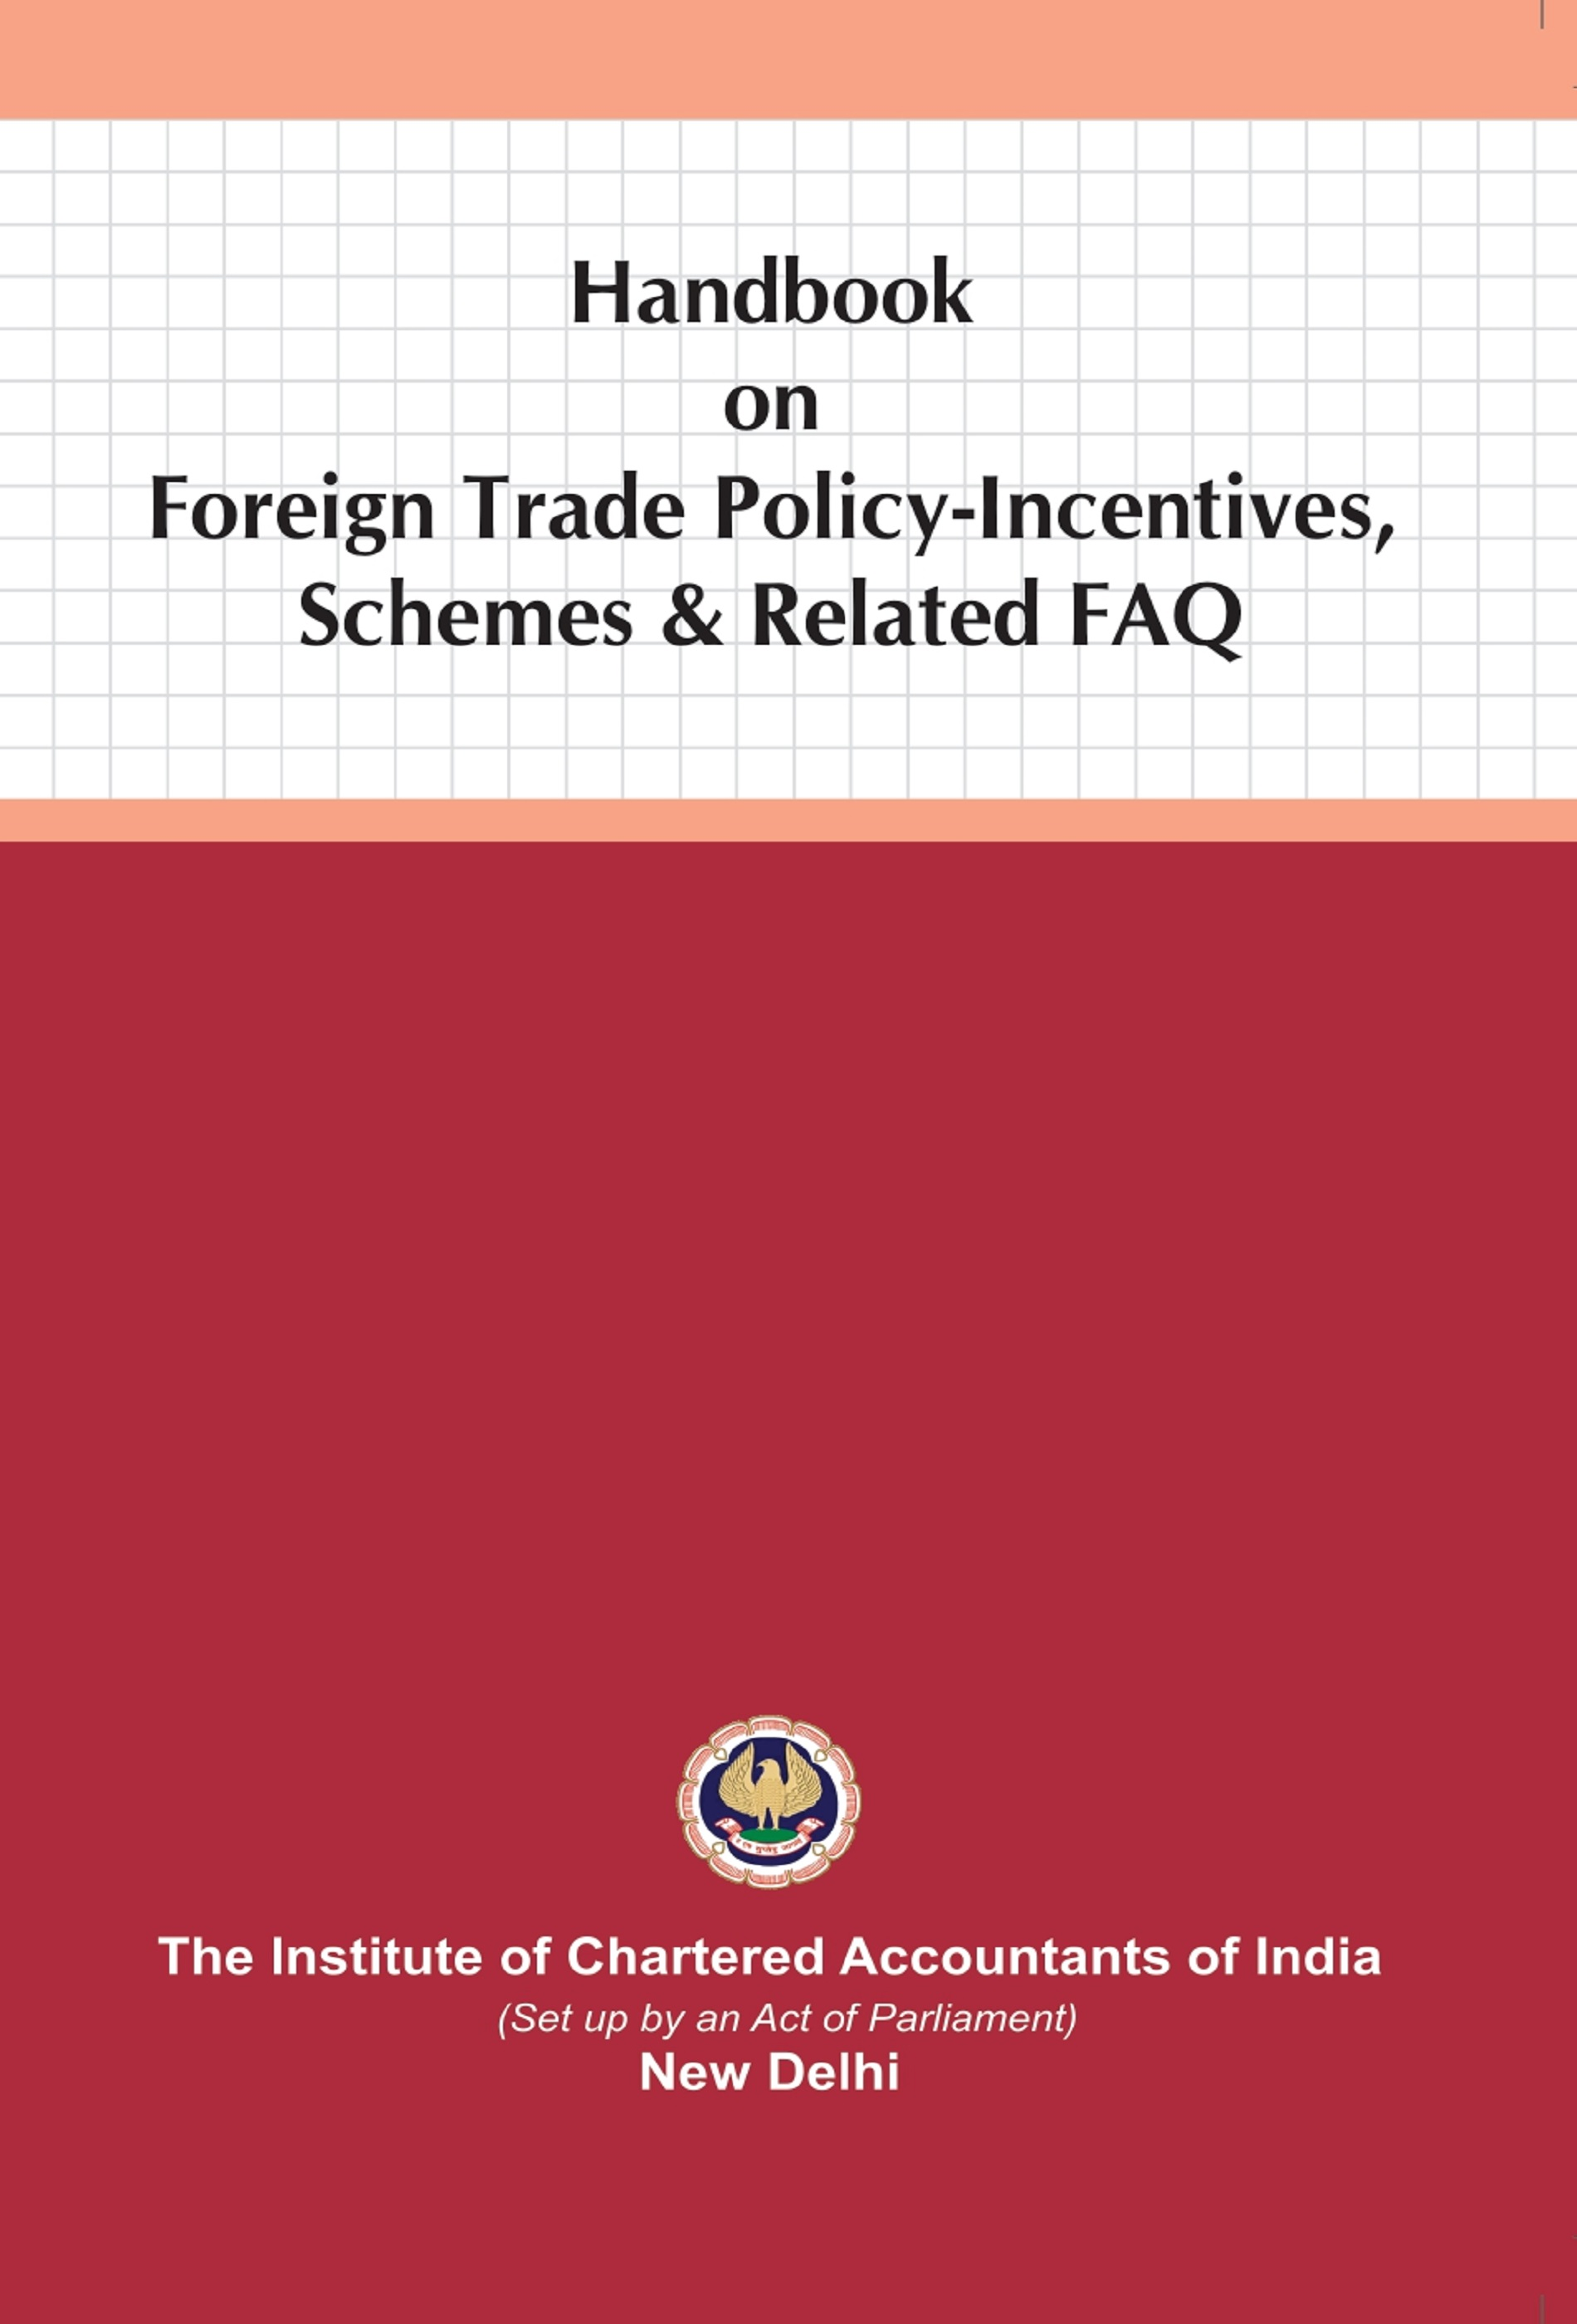 Handbook on Foreign Trade Policy-Incentives, Schemes & Related FAQ (August, 2020 Edition)